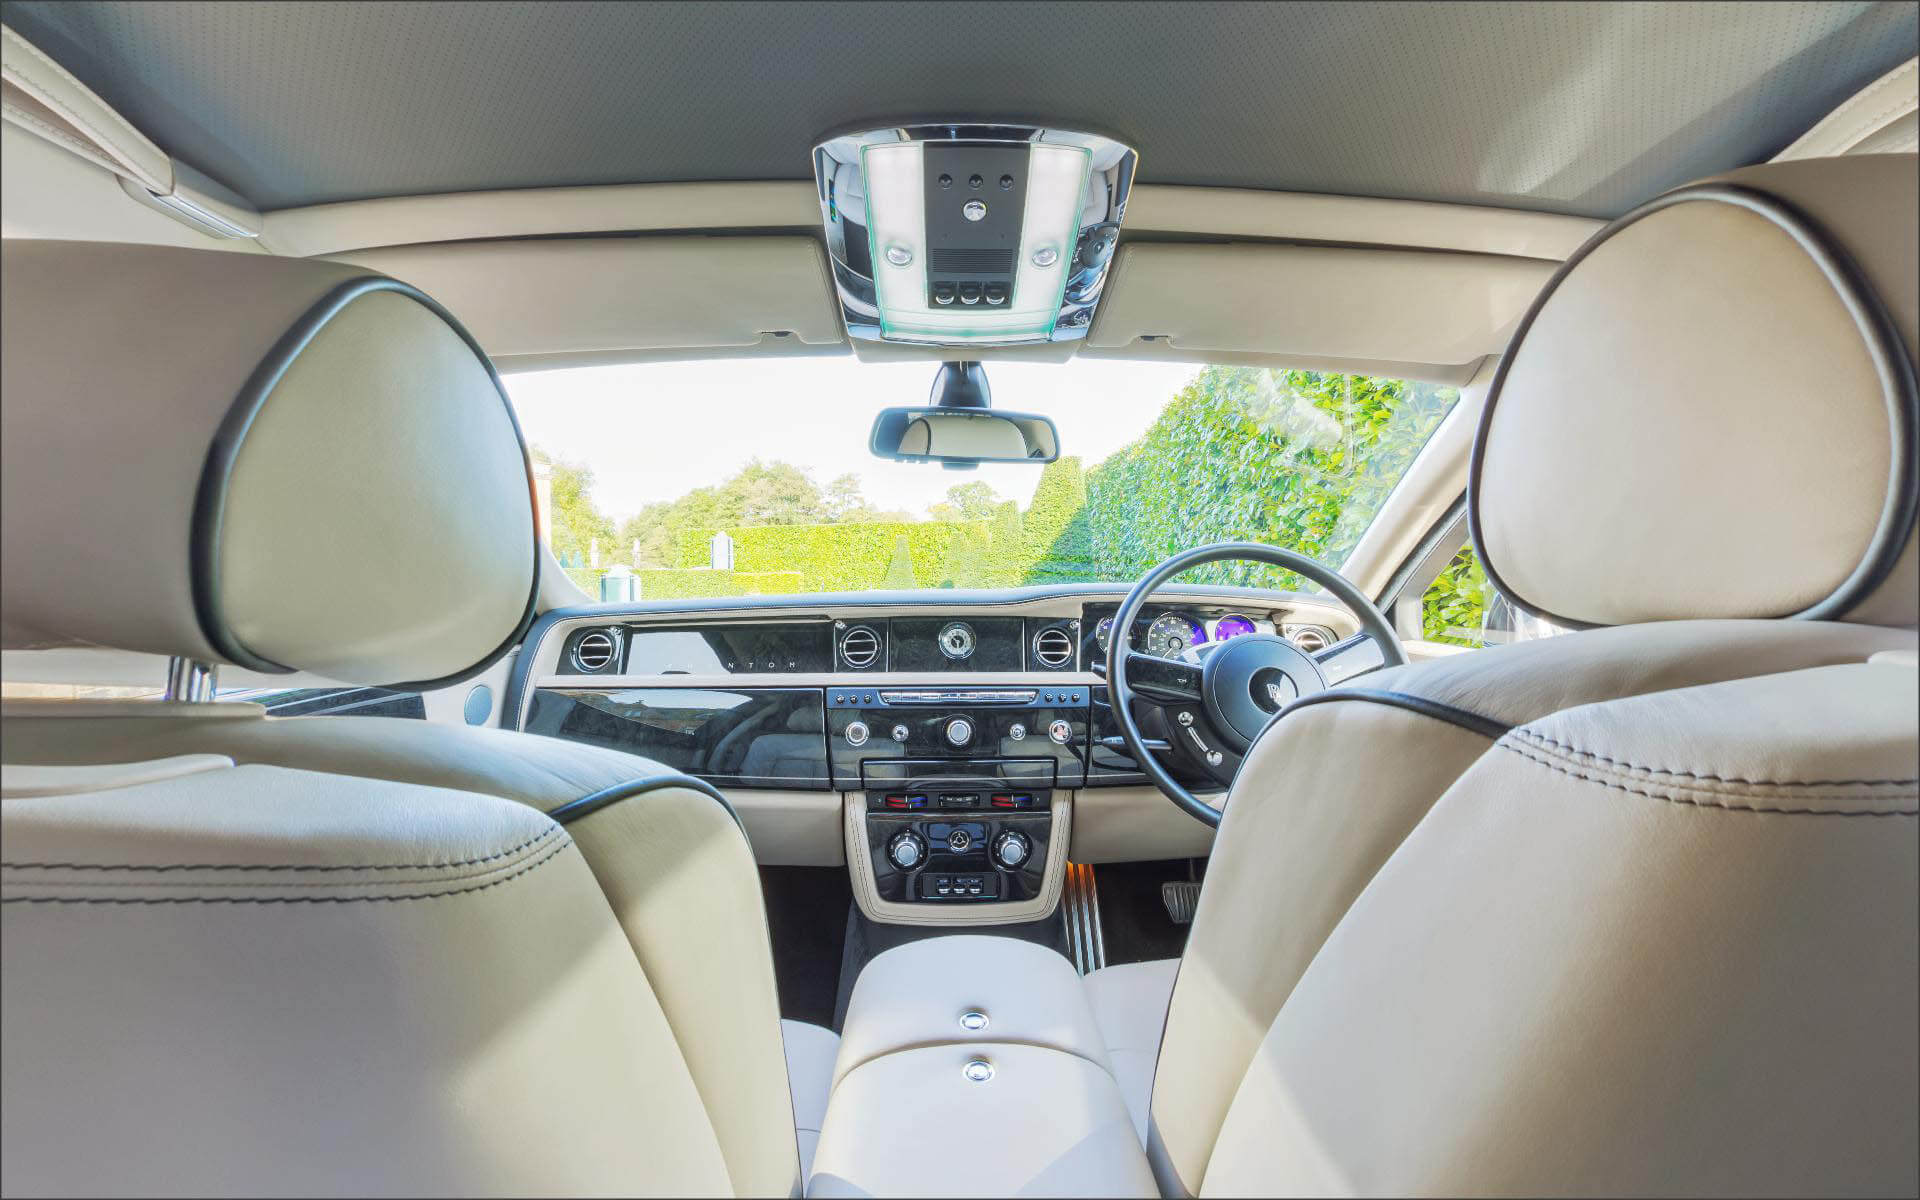 360 inside Rolls Royce Phantom car